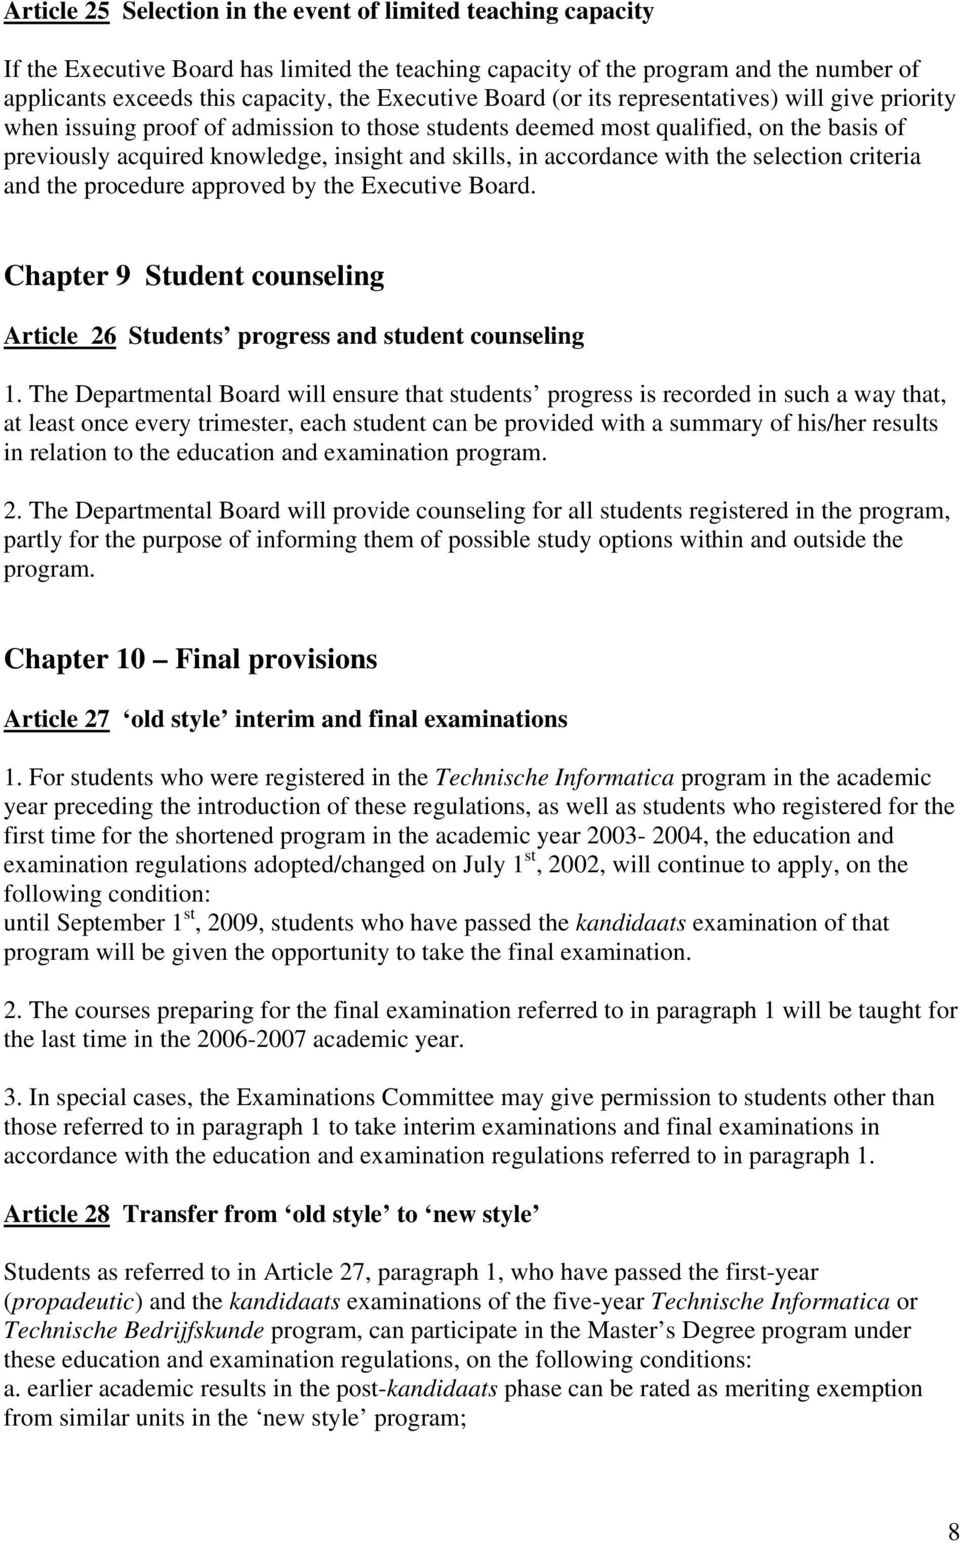 in accordance with the selection criteria and the procedure approved by the Executive Board. Chapter 9 Student counseling Article 26 Students progress and student counseling 1.